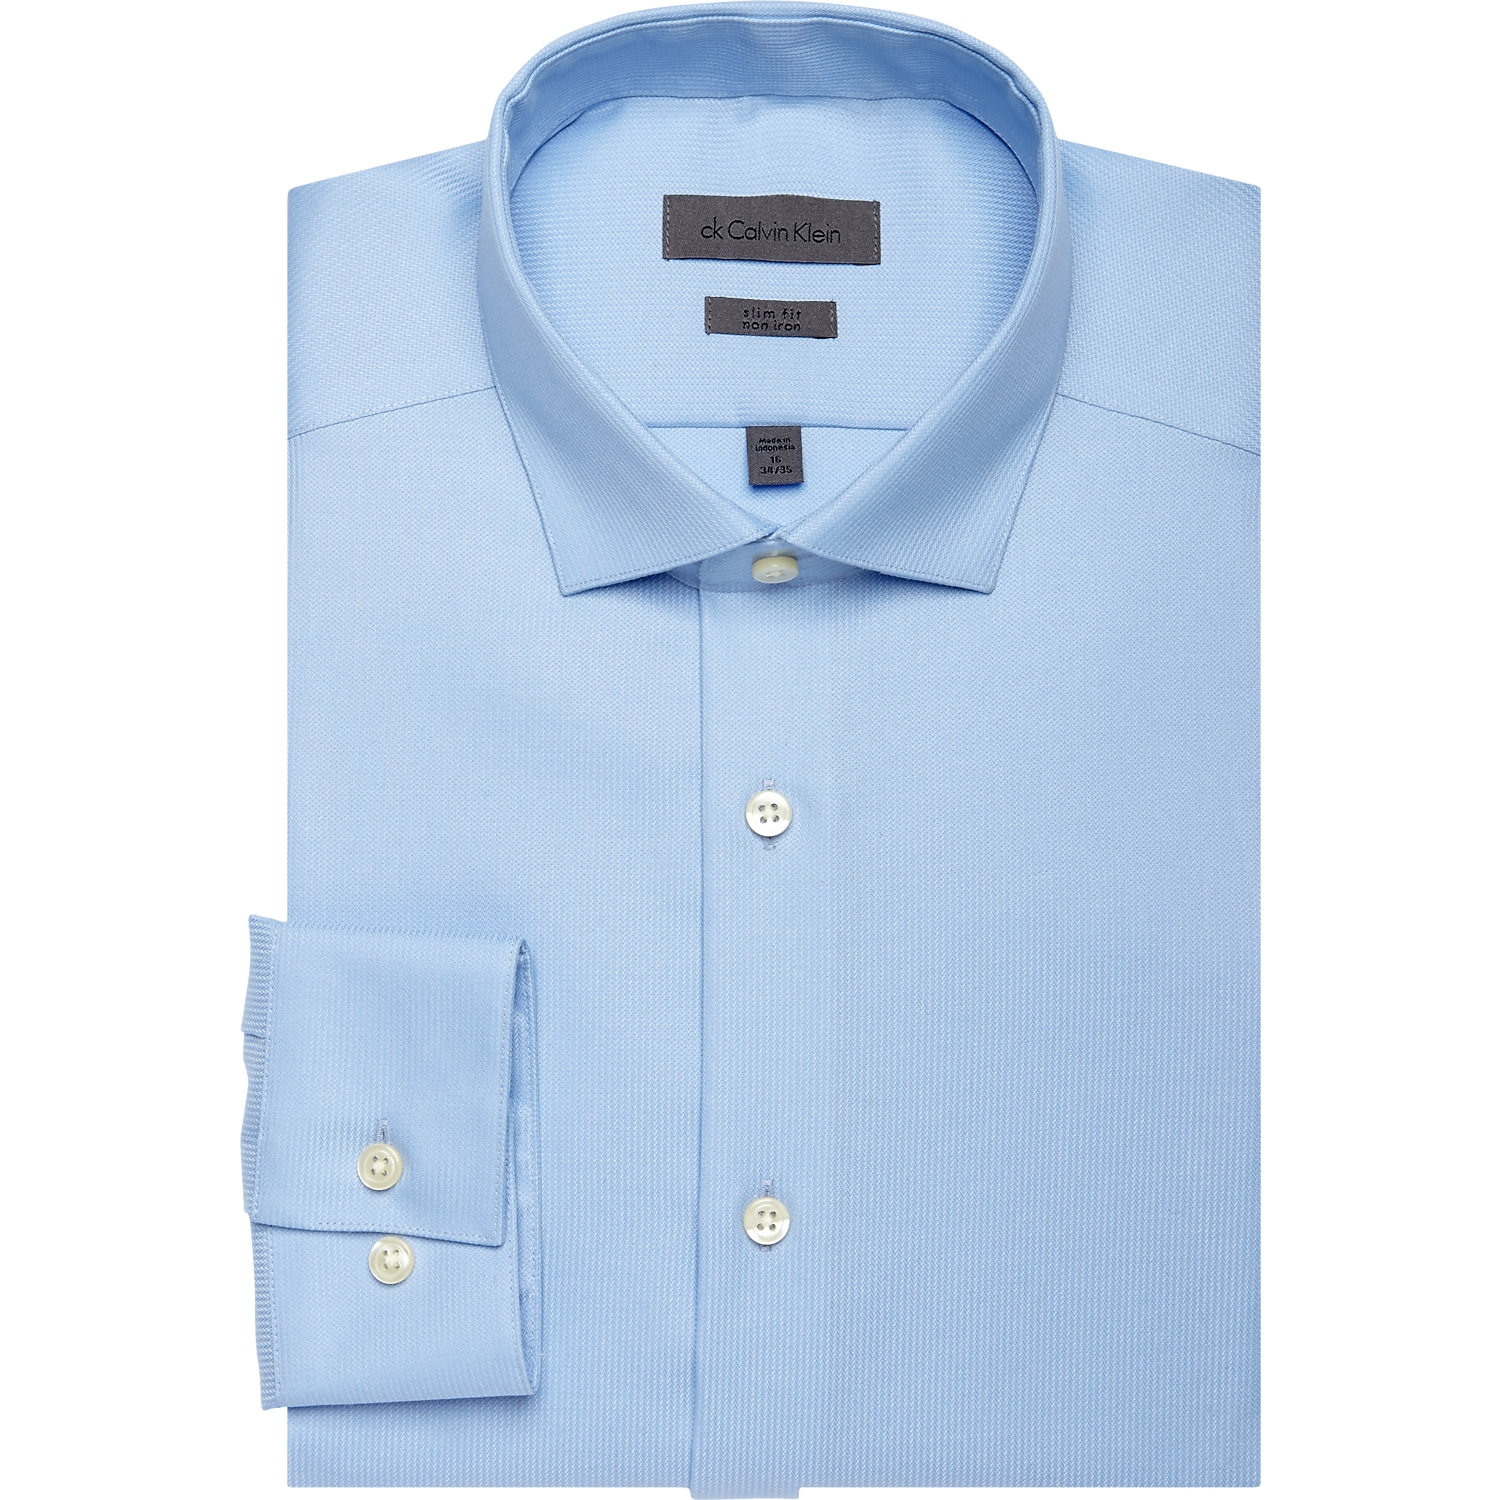 Slim Fit Dress Shirts Exra Trim Fitted Shirts Mens Wearhouse